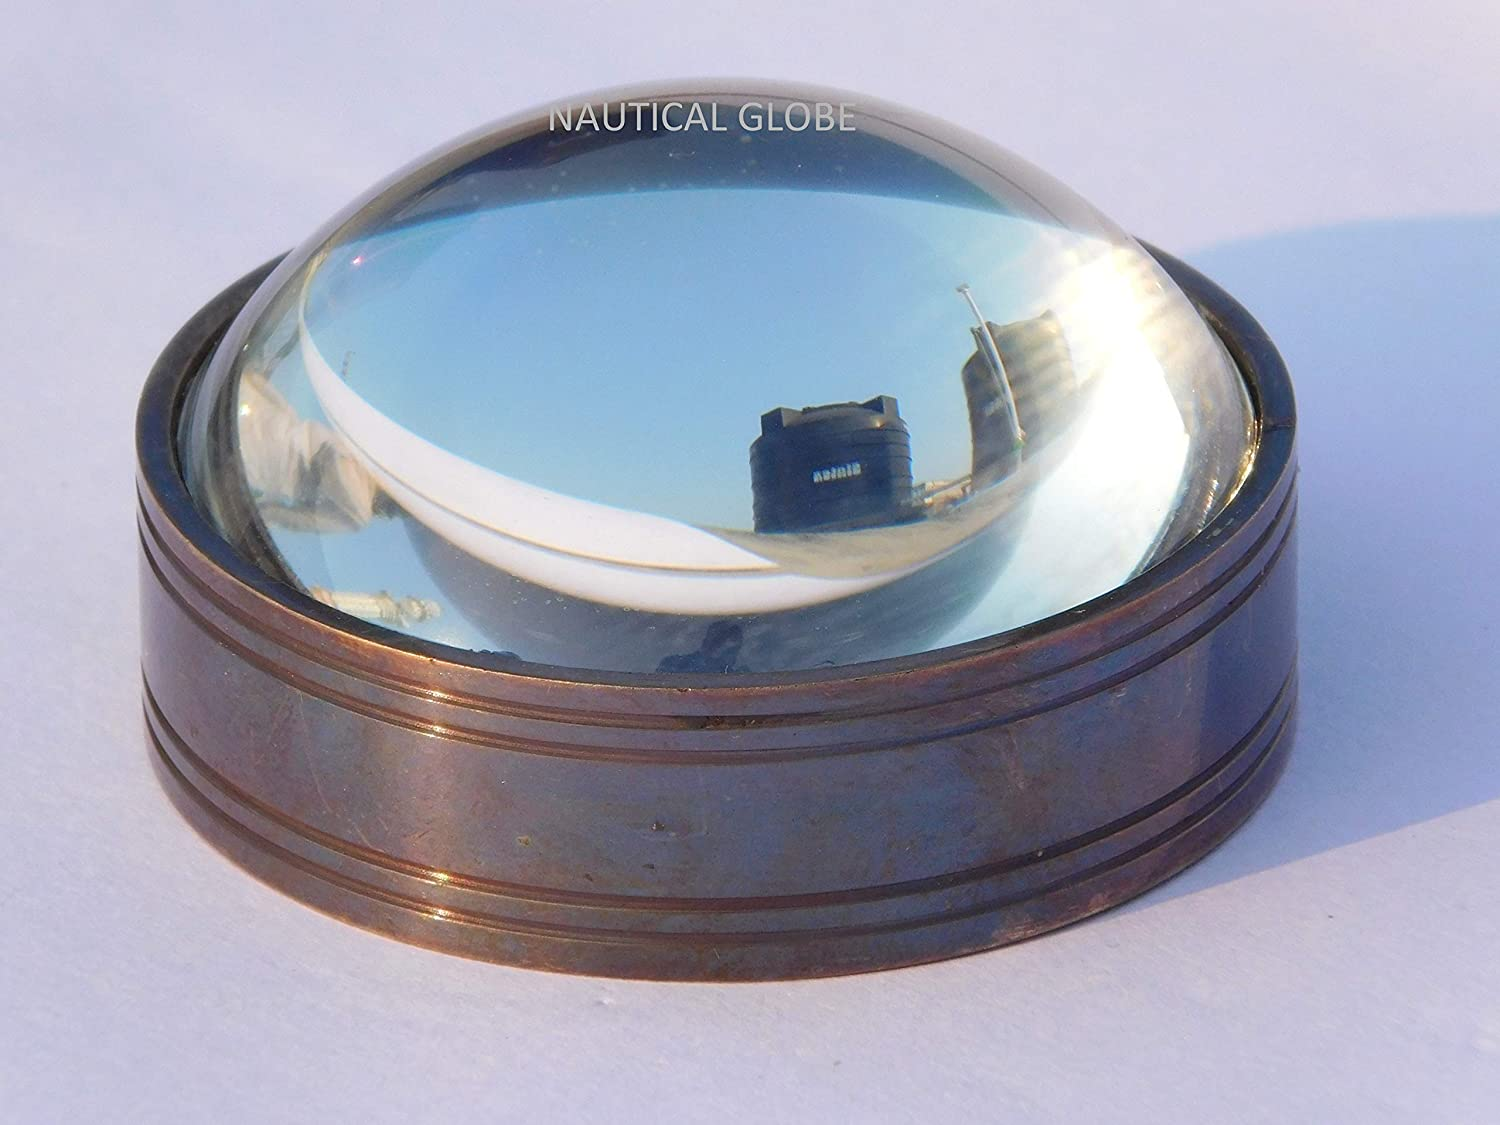 KHUMYAYAD 50 mm White Dome magnifing Magnifier Challenge the lowest price of Japan ☆ Lance Glass Brass 2021 spring and summer new